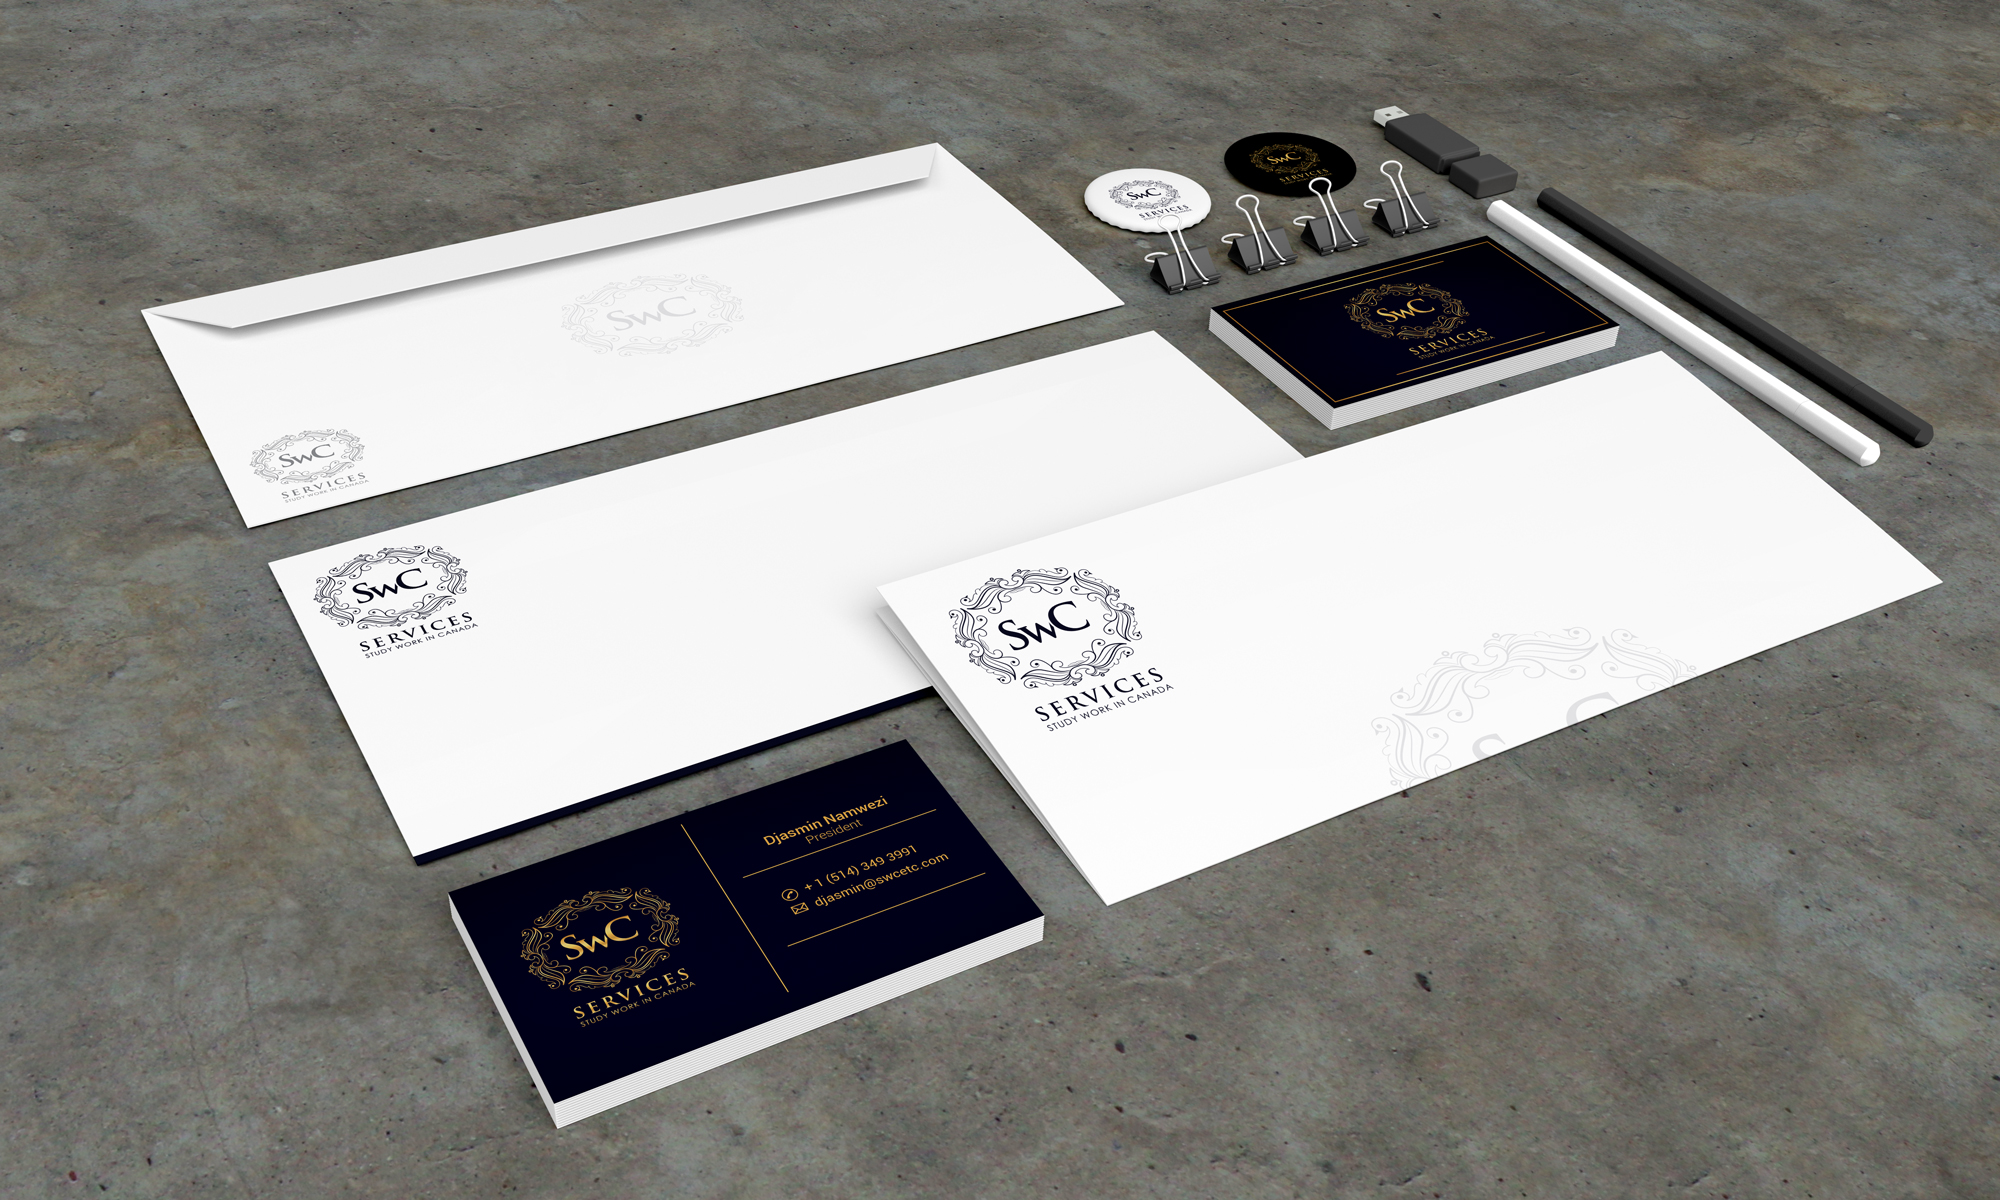 Stationery Design Template for SWC Services - Logo Design Deck